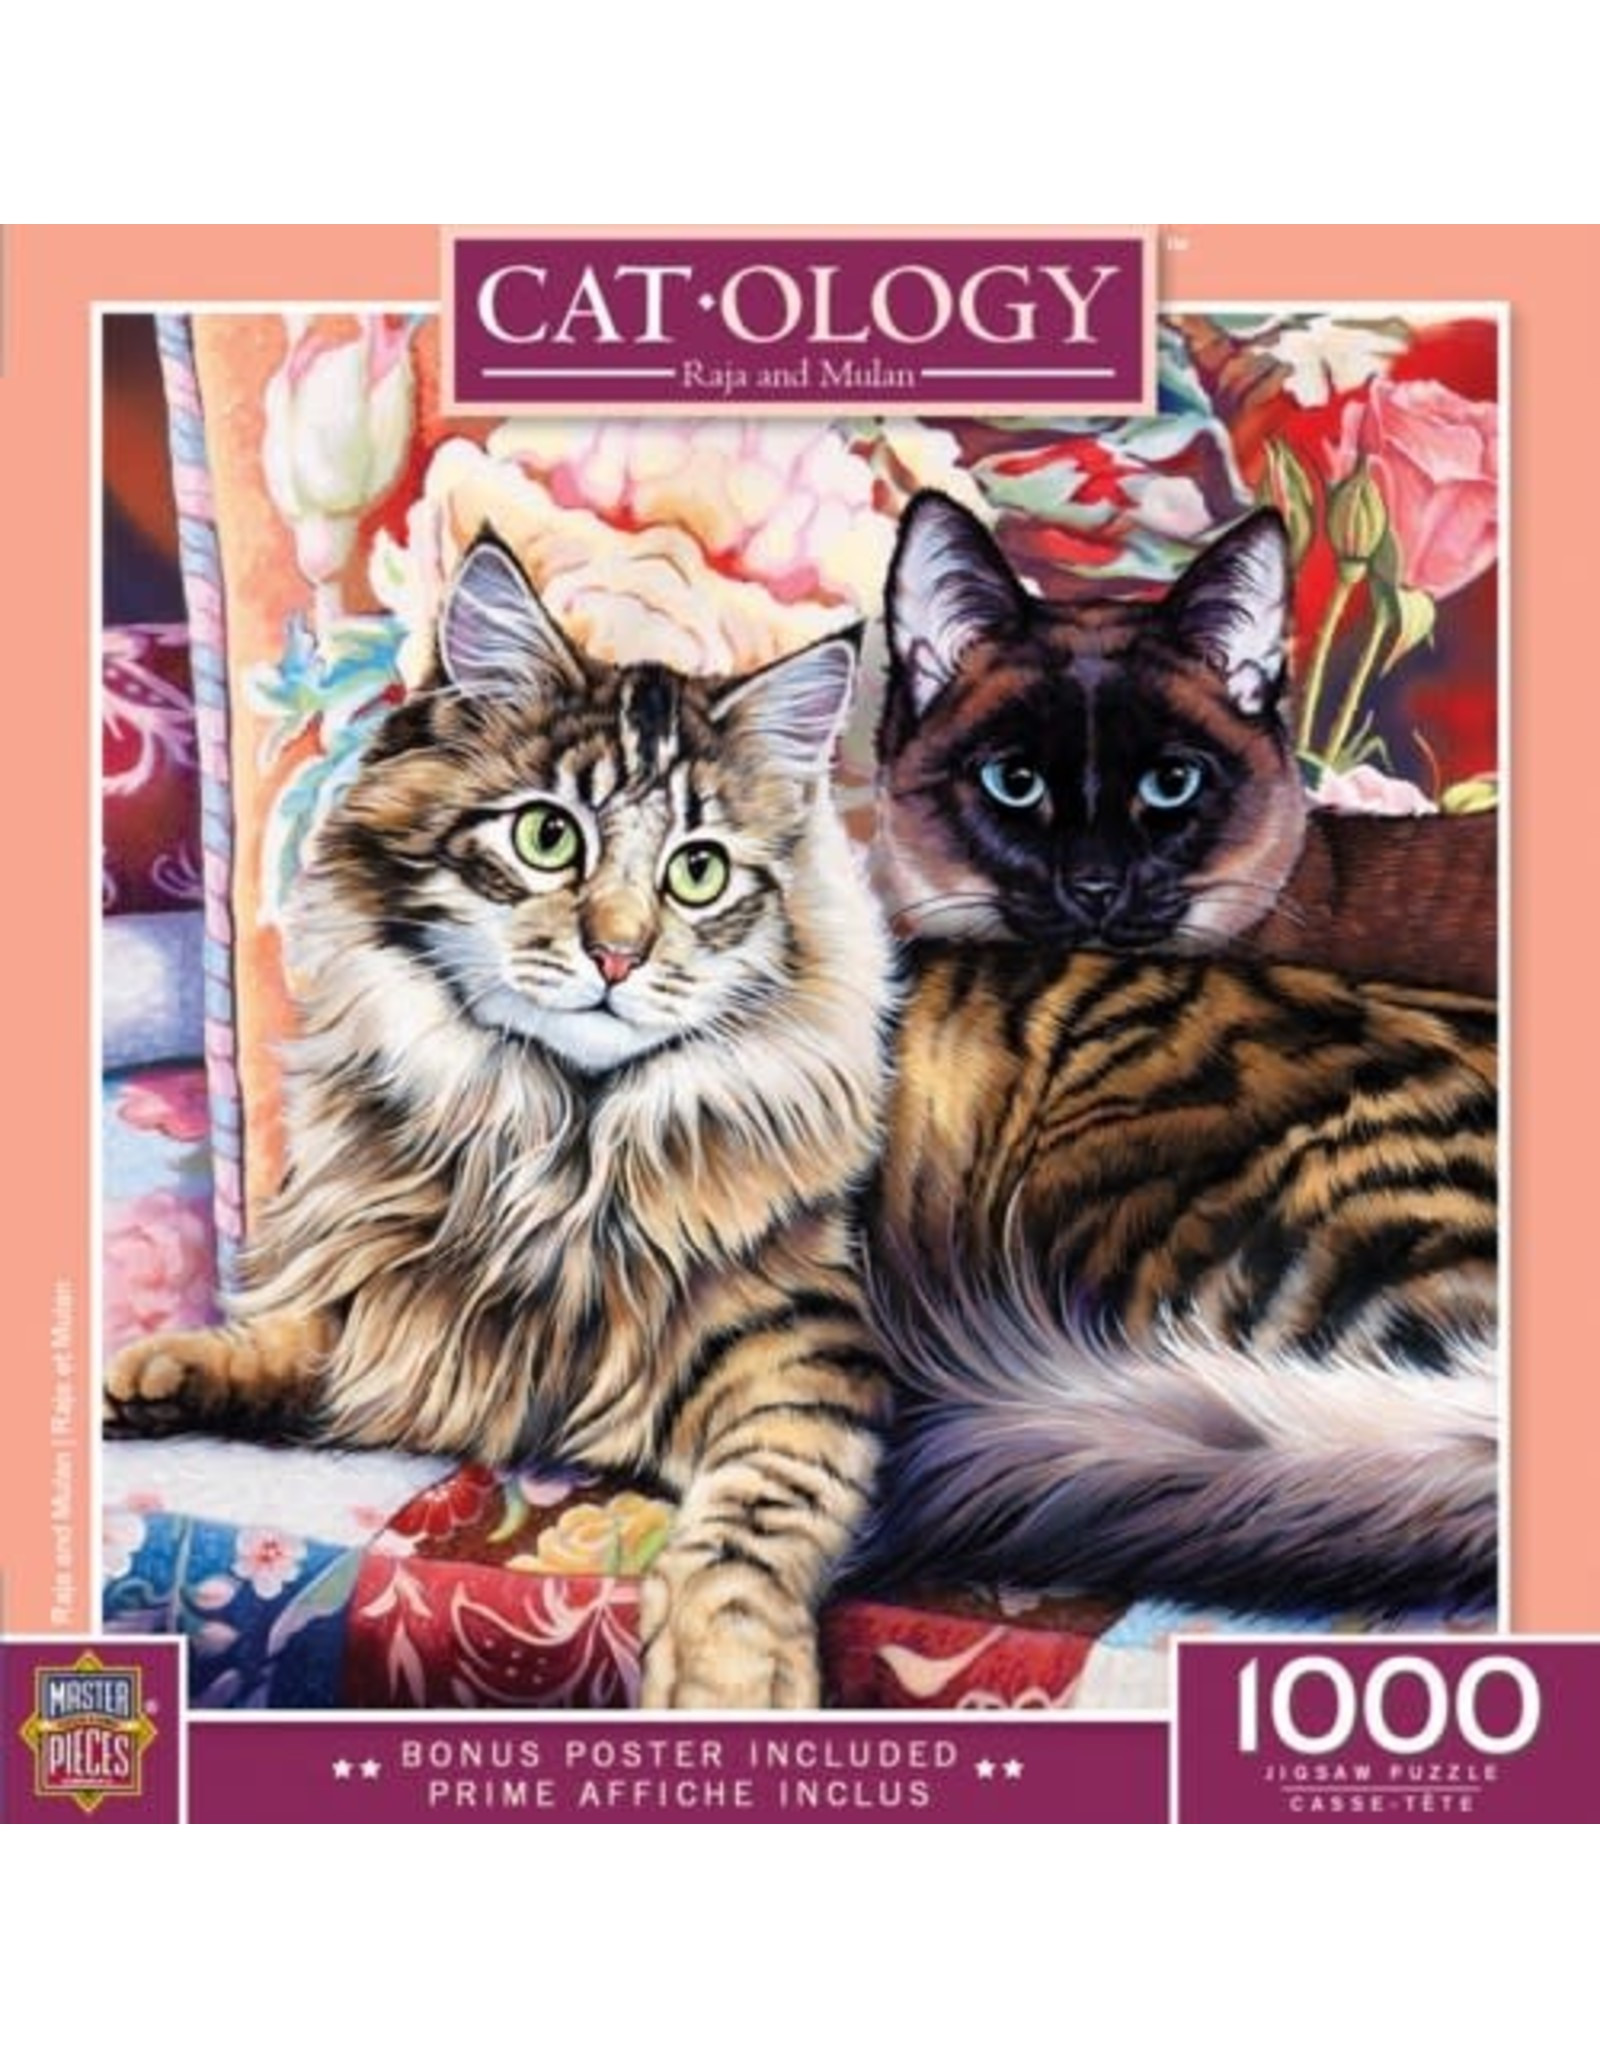 Masterpieces BF71814 1000pc puzzle Catalogy